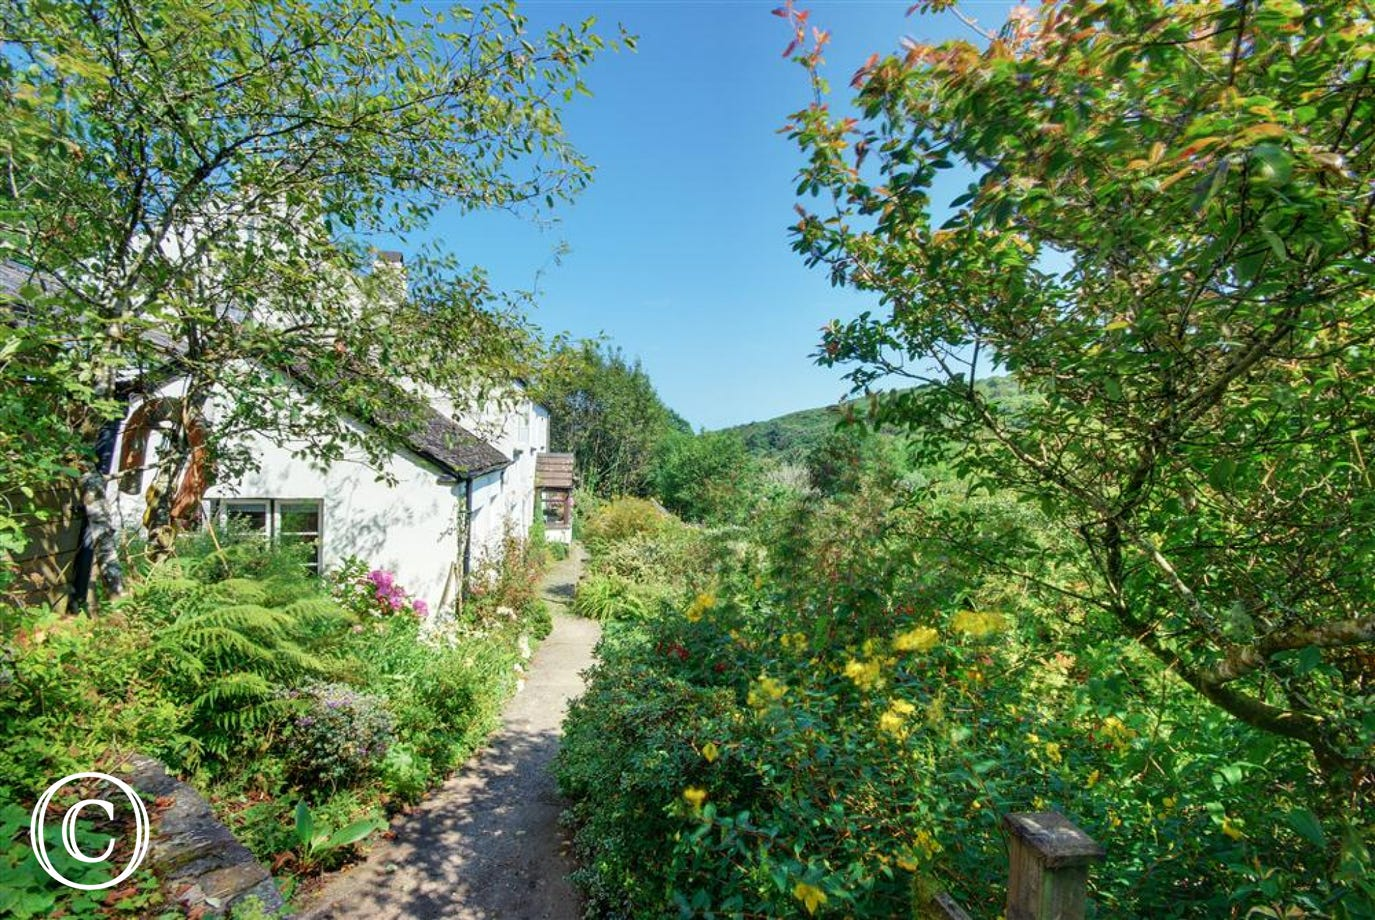 This delightful semi-detached character cottage is set within a canopy of ancient trees with an abundance of ferns and wild flowers